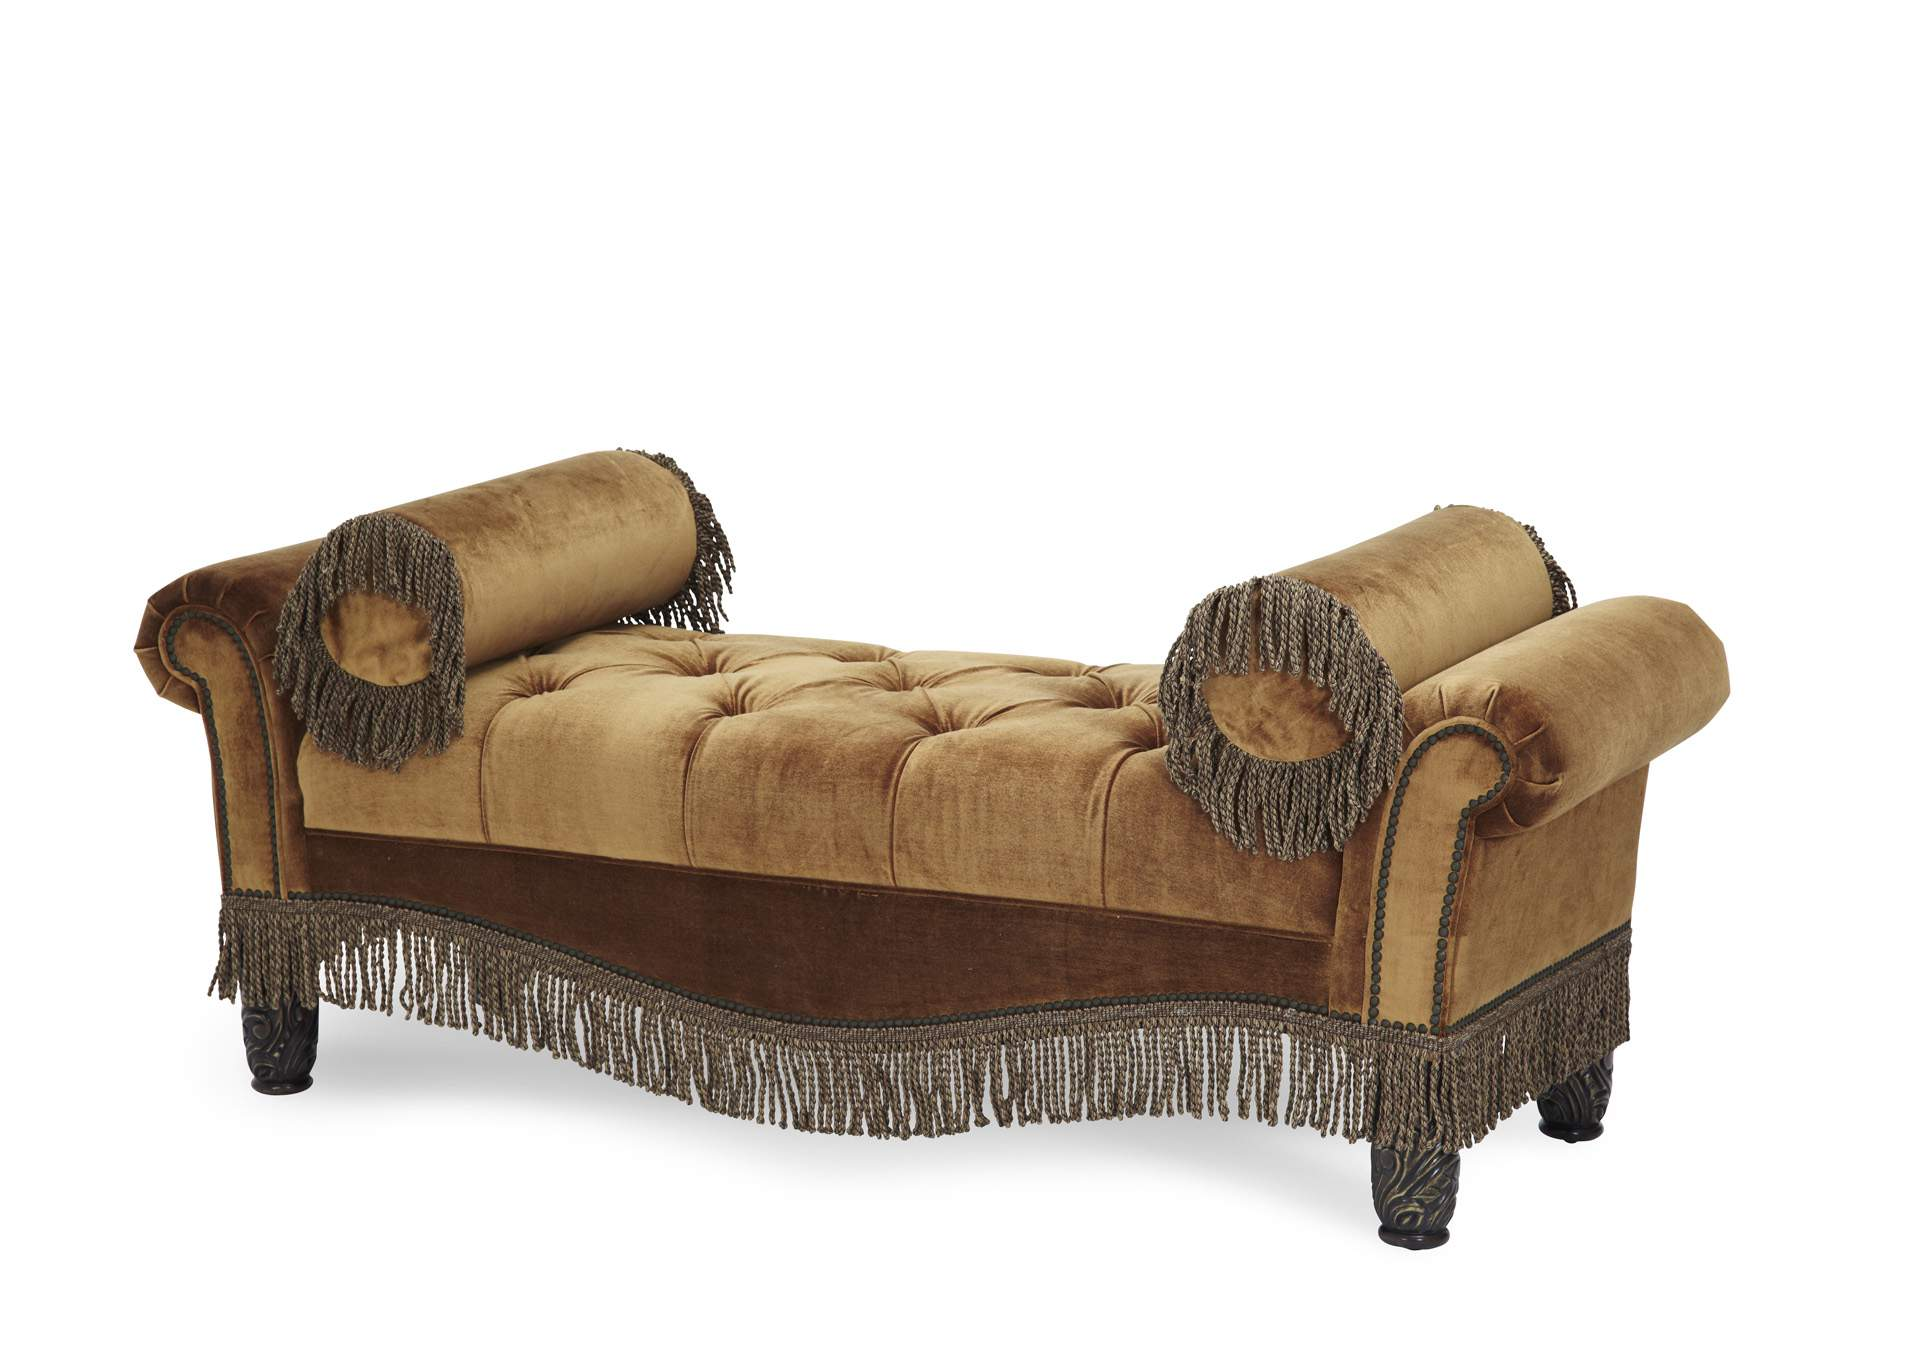 Essex Manor Deep English Tea Upholstered Tufted Two Arm Bench - Opt1,AICO